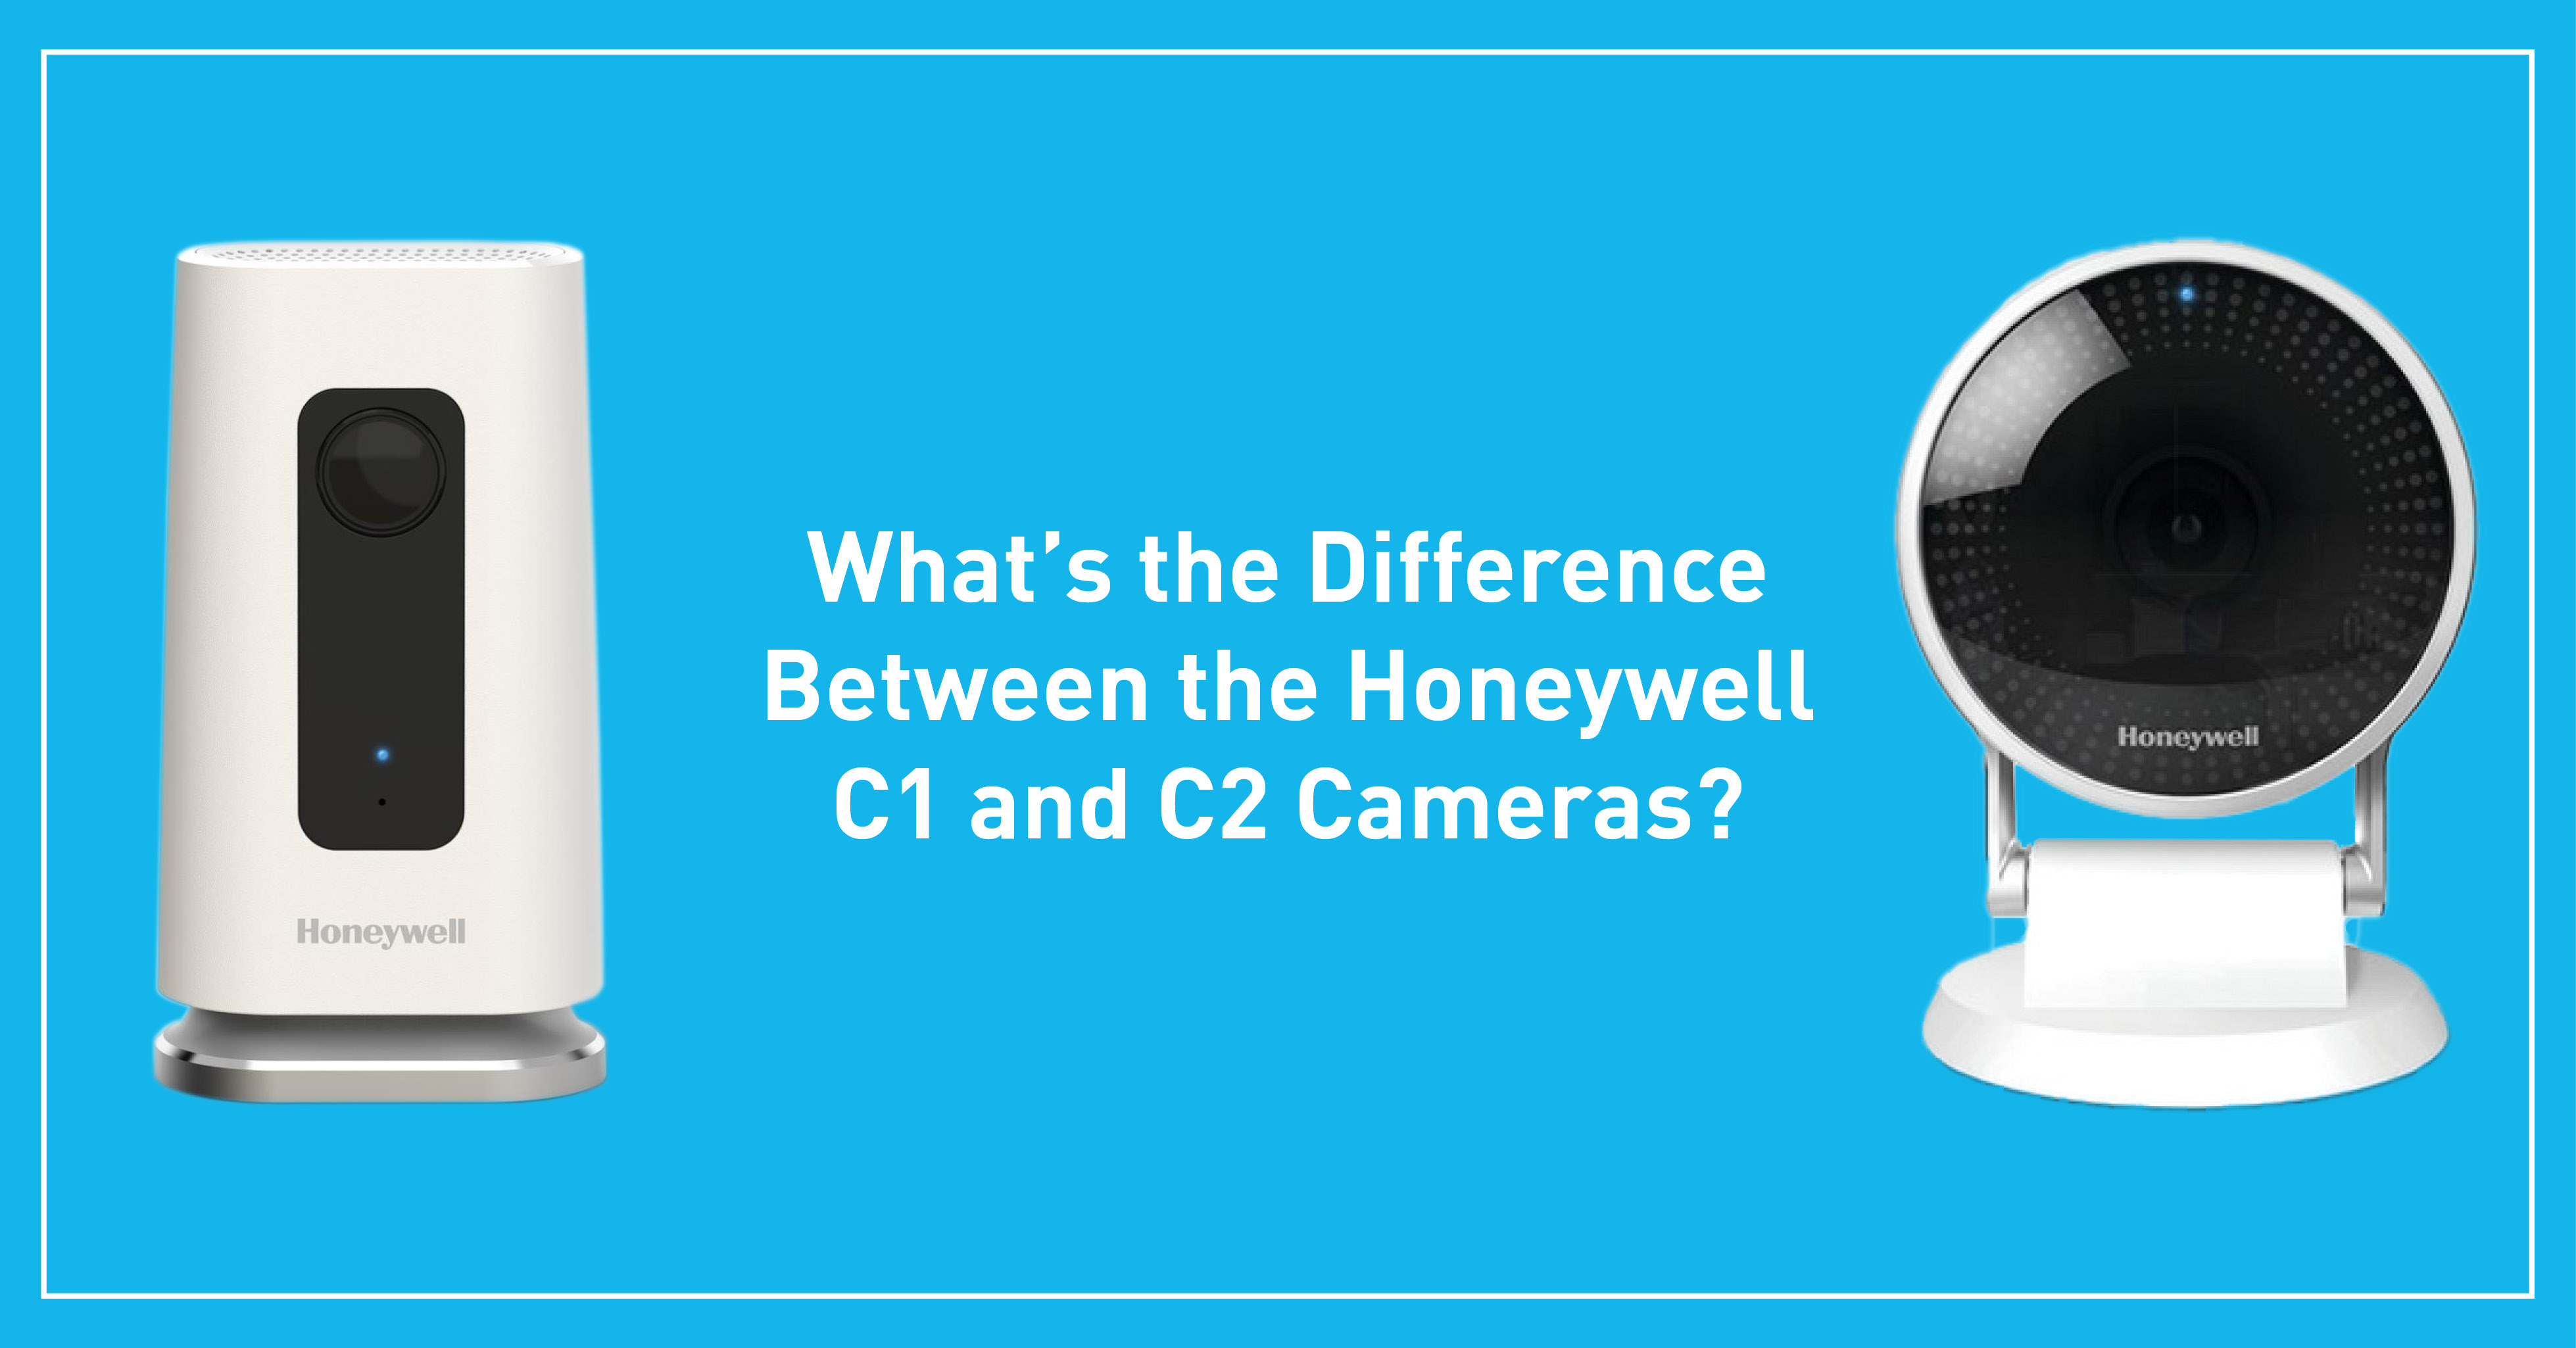 What's the Difference Between the Honeywell C1 and C2 Cameras?